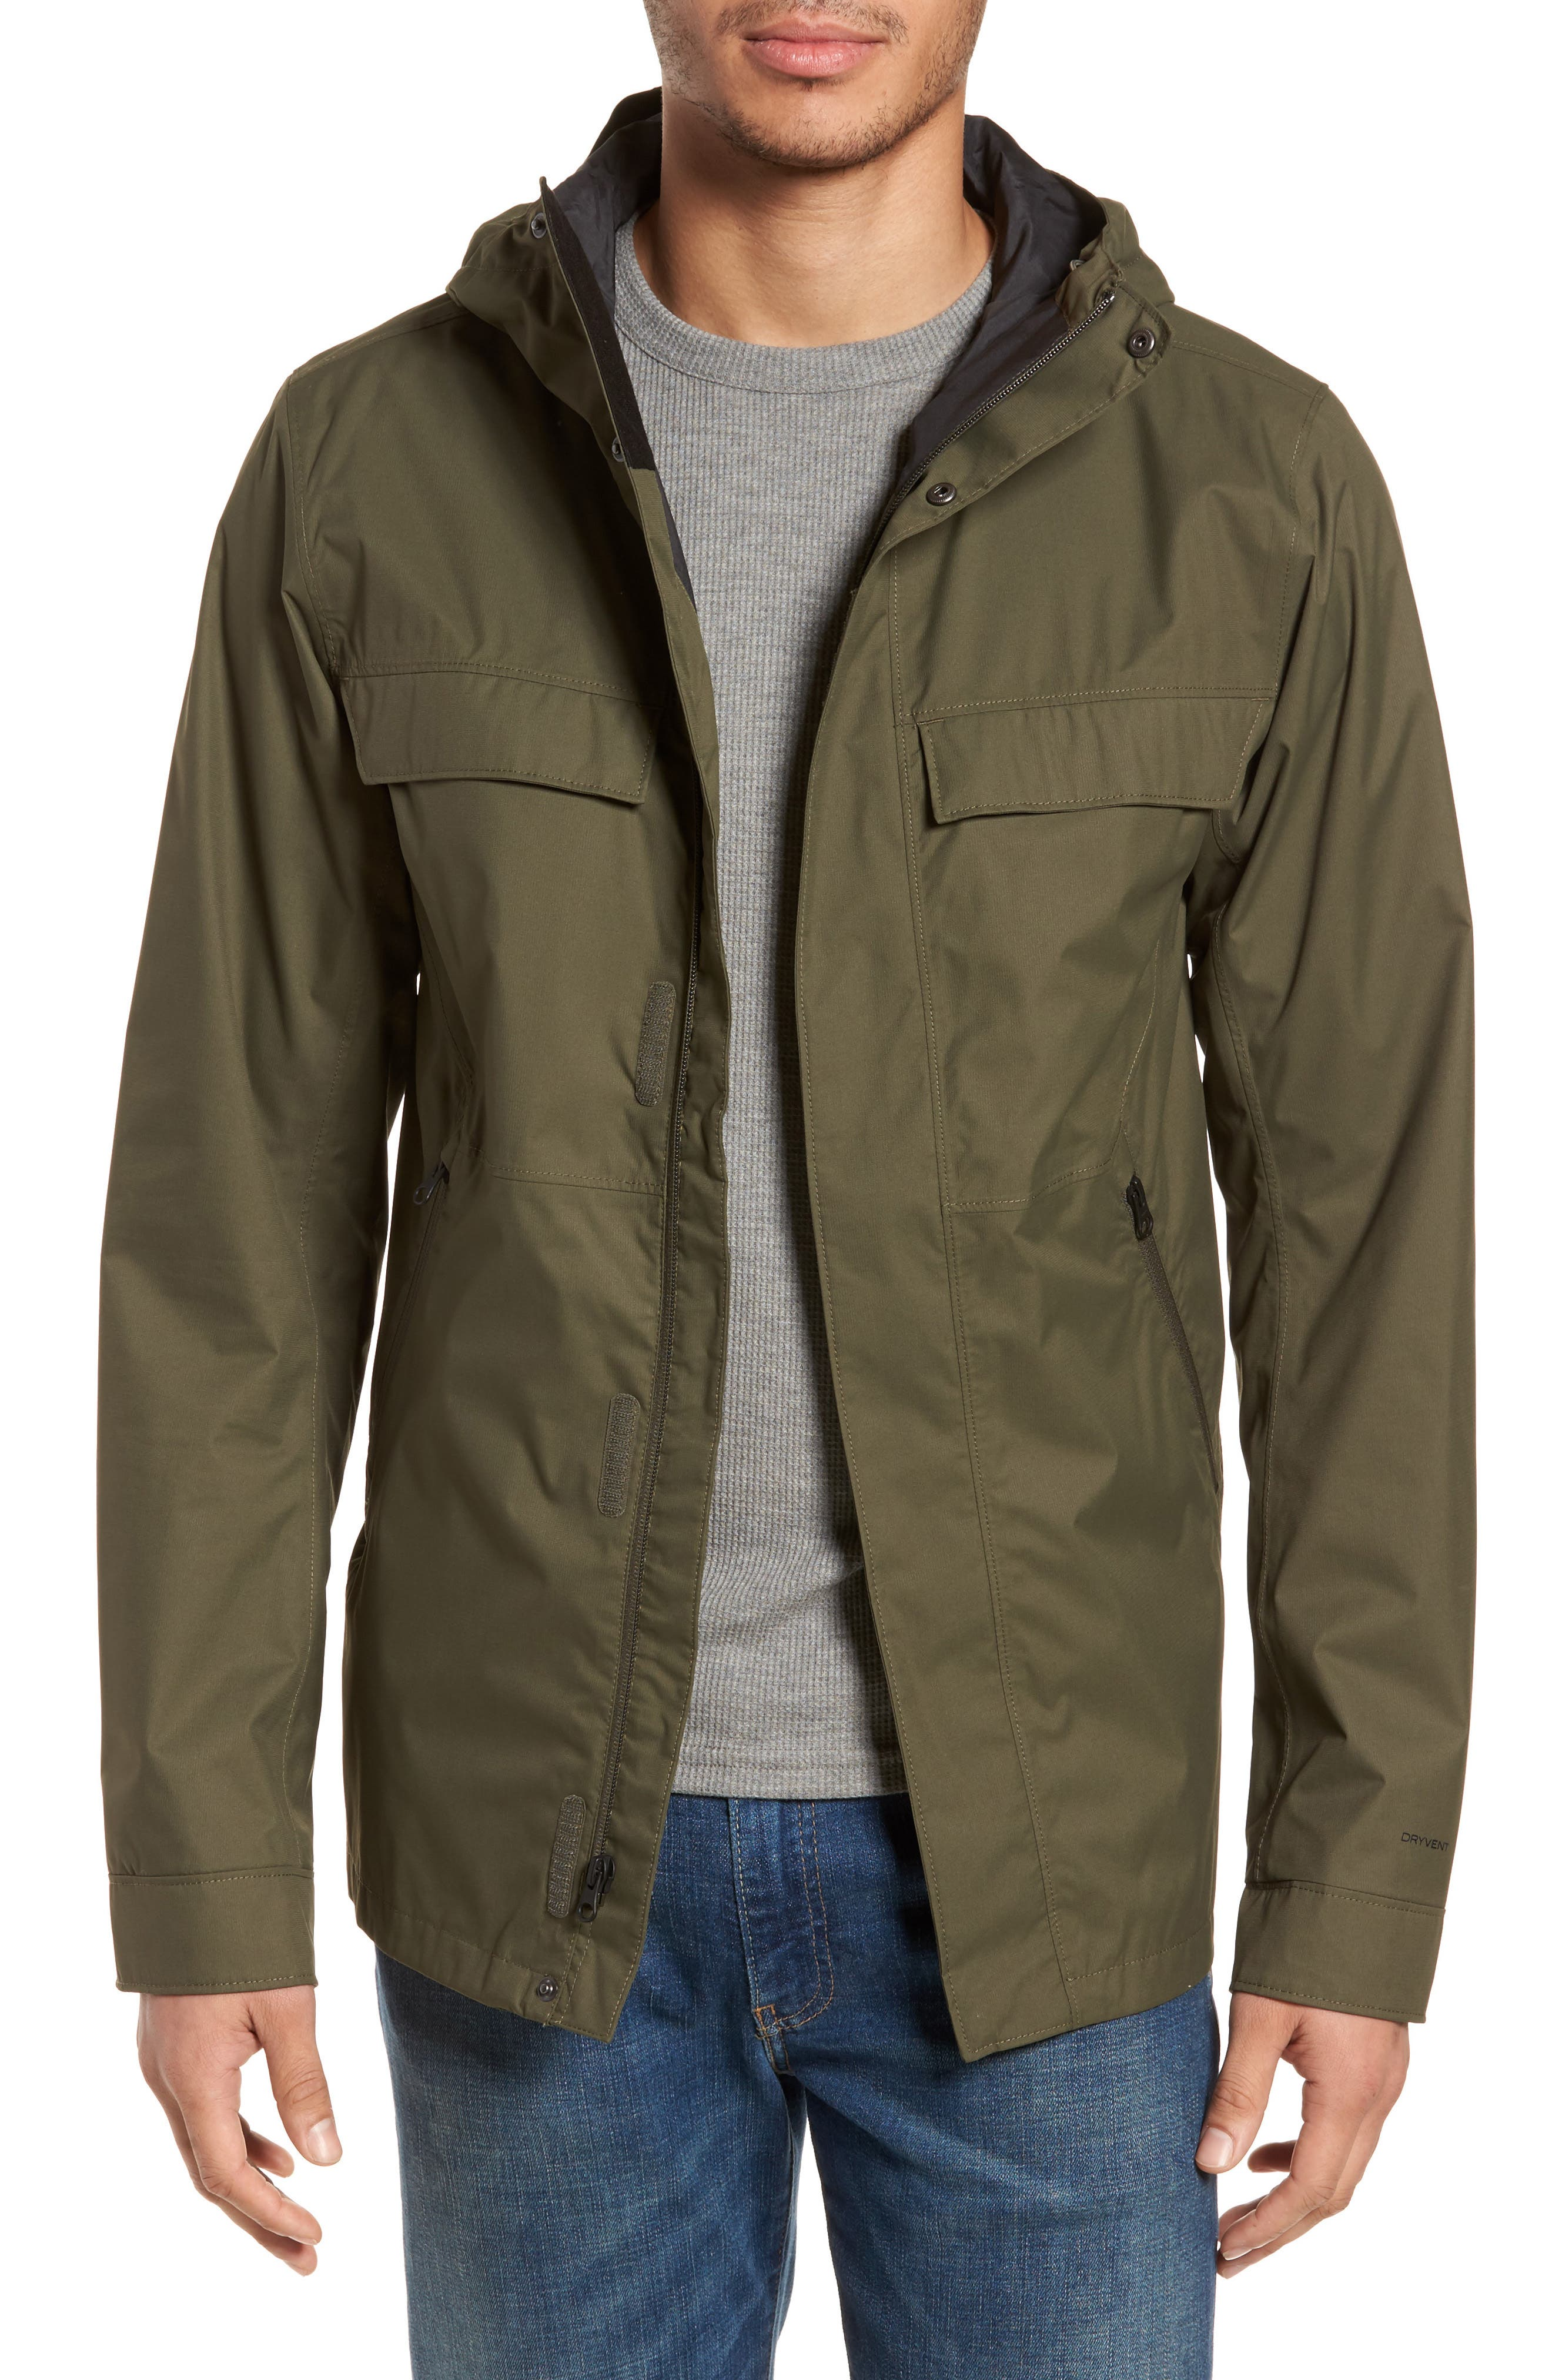 Jenison II Insulated Waterproof Jacket,                         Main,                         color, New Taupe Green